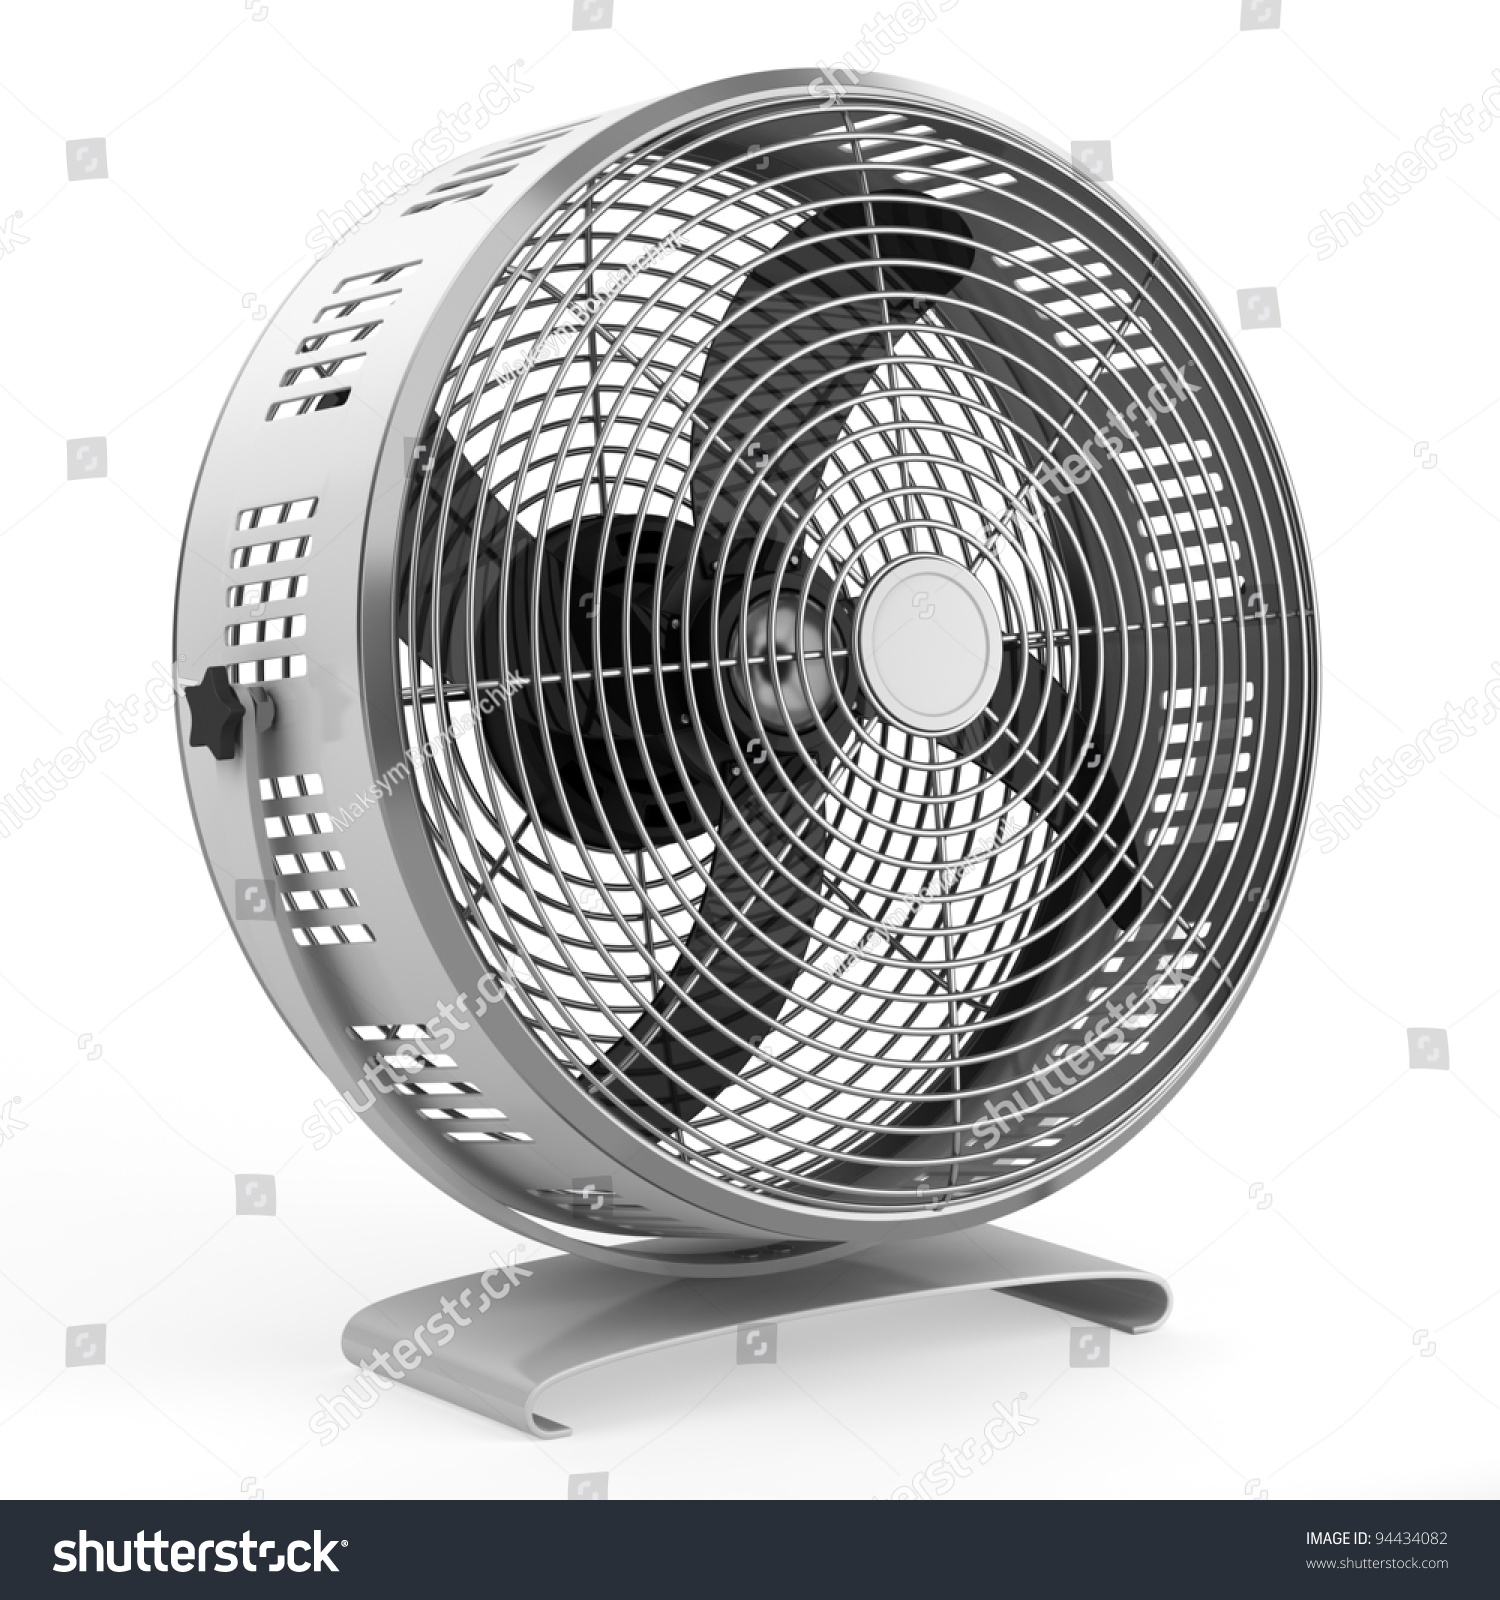 Modern Electric Metallic Fan Isolated On White Background